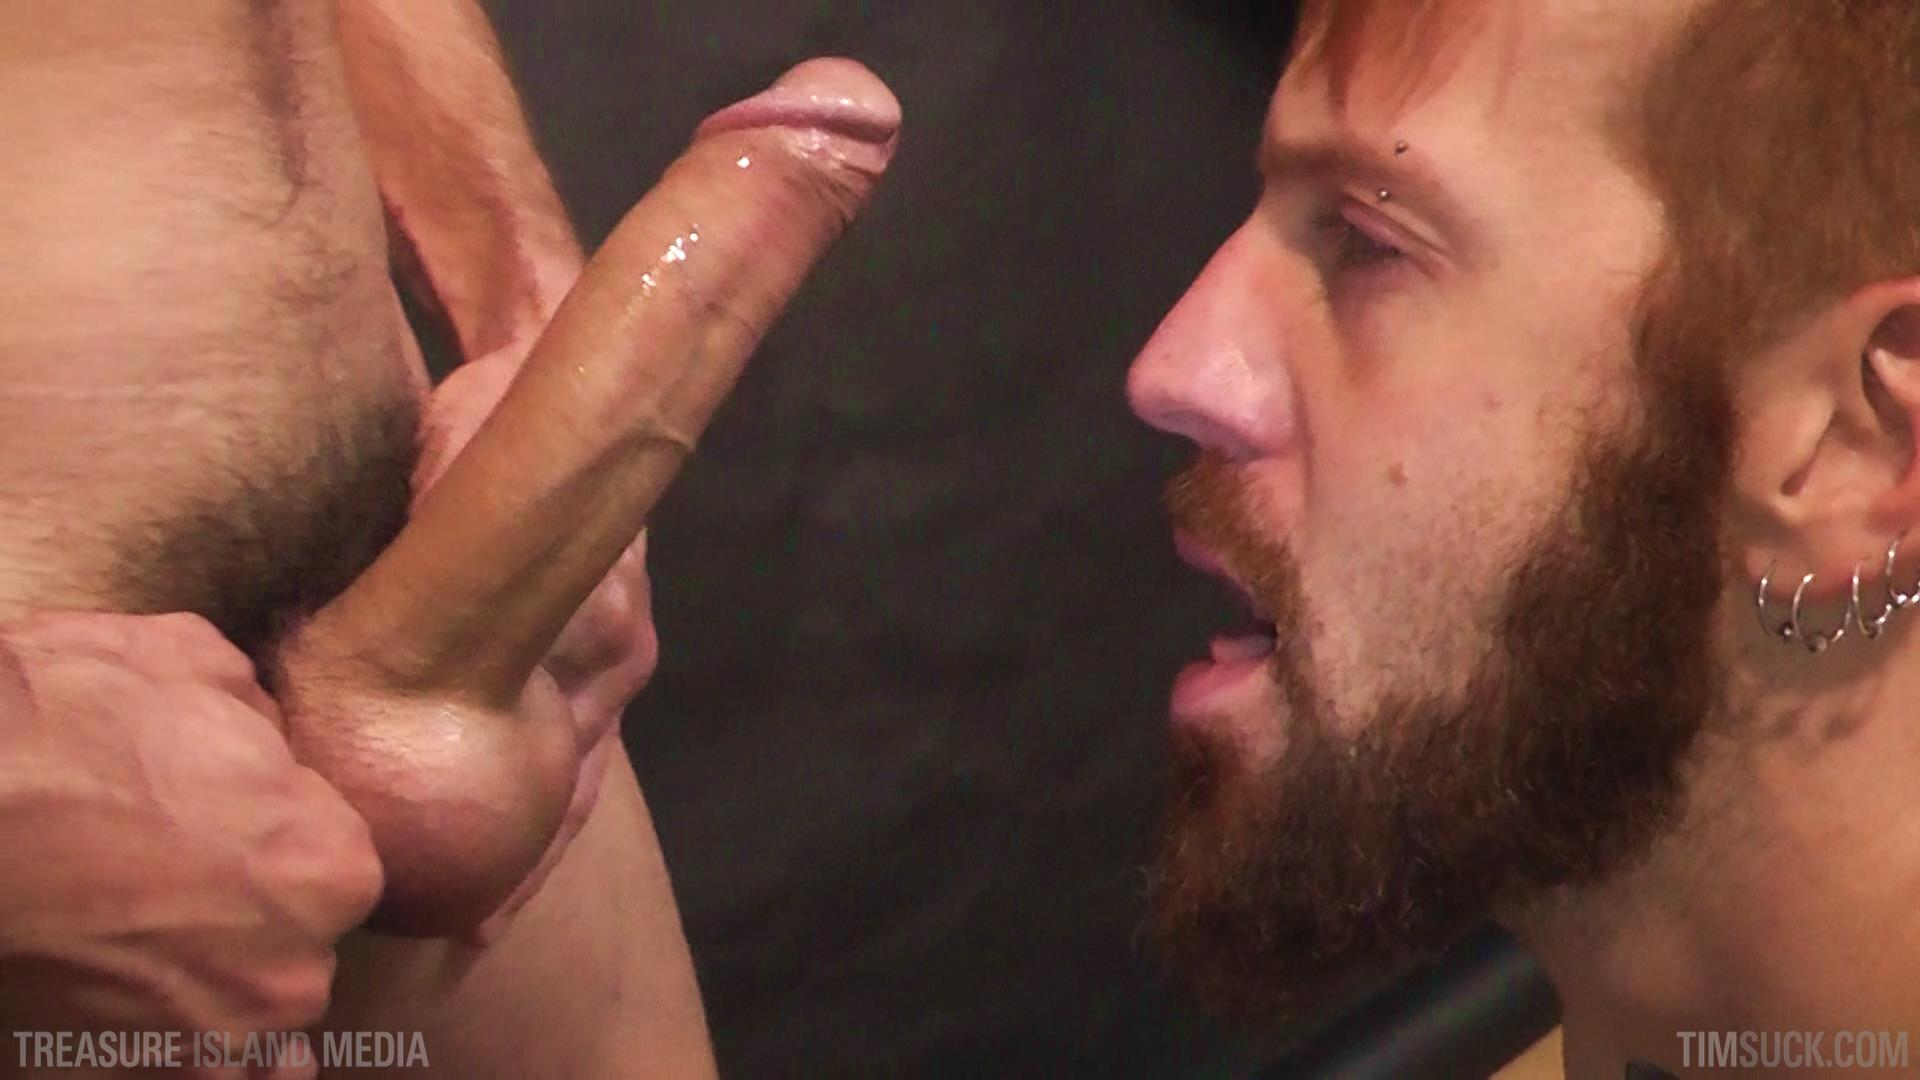 Treasure Island Media TimSuck Pete Summers and Dean Brody Sucking A Big Uncut Cock Amateur Gay Porn 47 Bearded Ginger Services A Big Uncut Cock And Eats The Cum